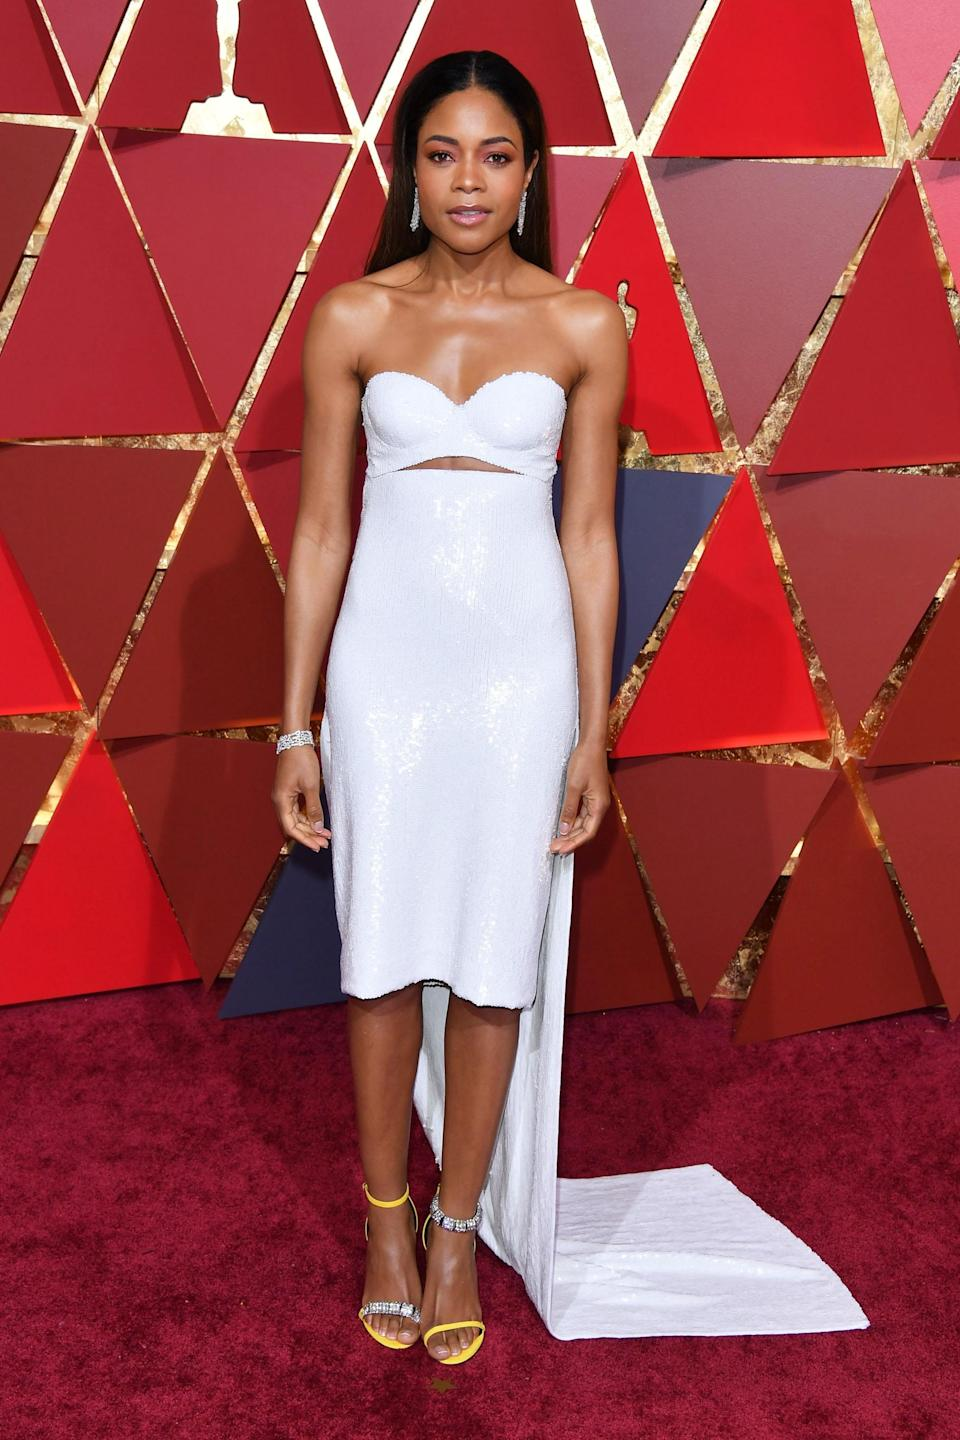 """<h2>Naomie Harris, 2017</h2><br>Of the four <em>Moonlight</em> stars dressed by Raf Simons for Calvin Klein, this white sequin frock on Naomie Harris took home the prize (for best-dressed) in our book.<br><br><em>Naomie Harris in Raf Simons for Calvin Klein.</em><span class=""""copyright"""">Photo: George Pimentel/FilmMagic/Getty Images.</span>"""